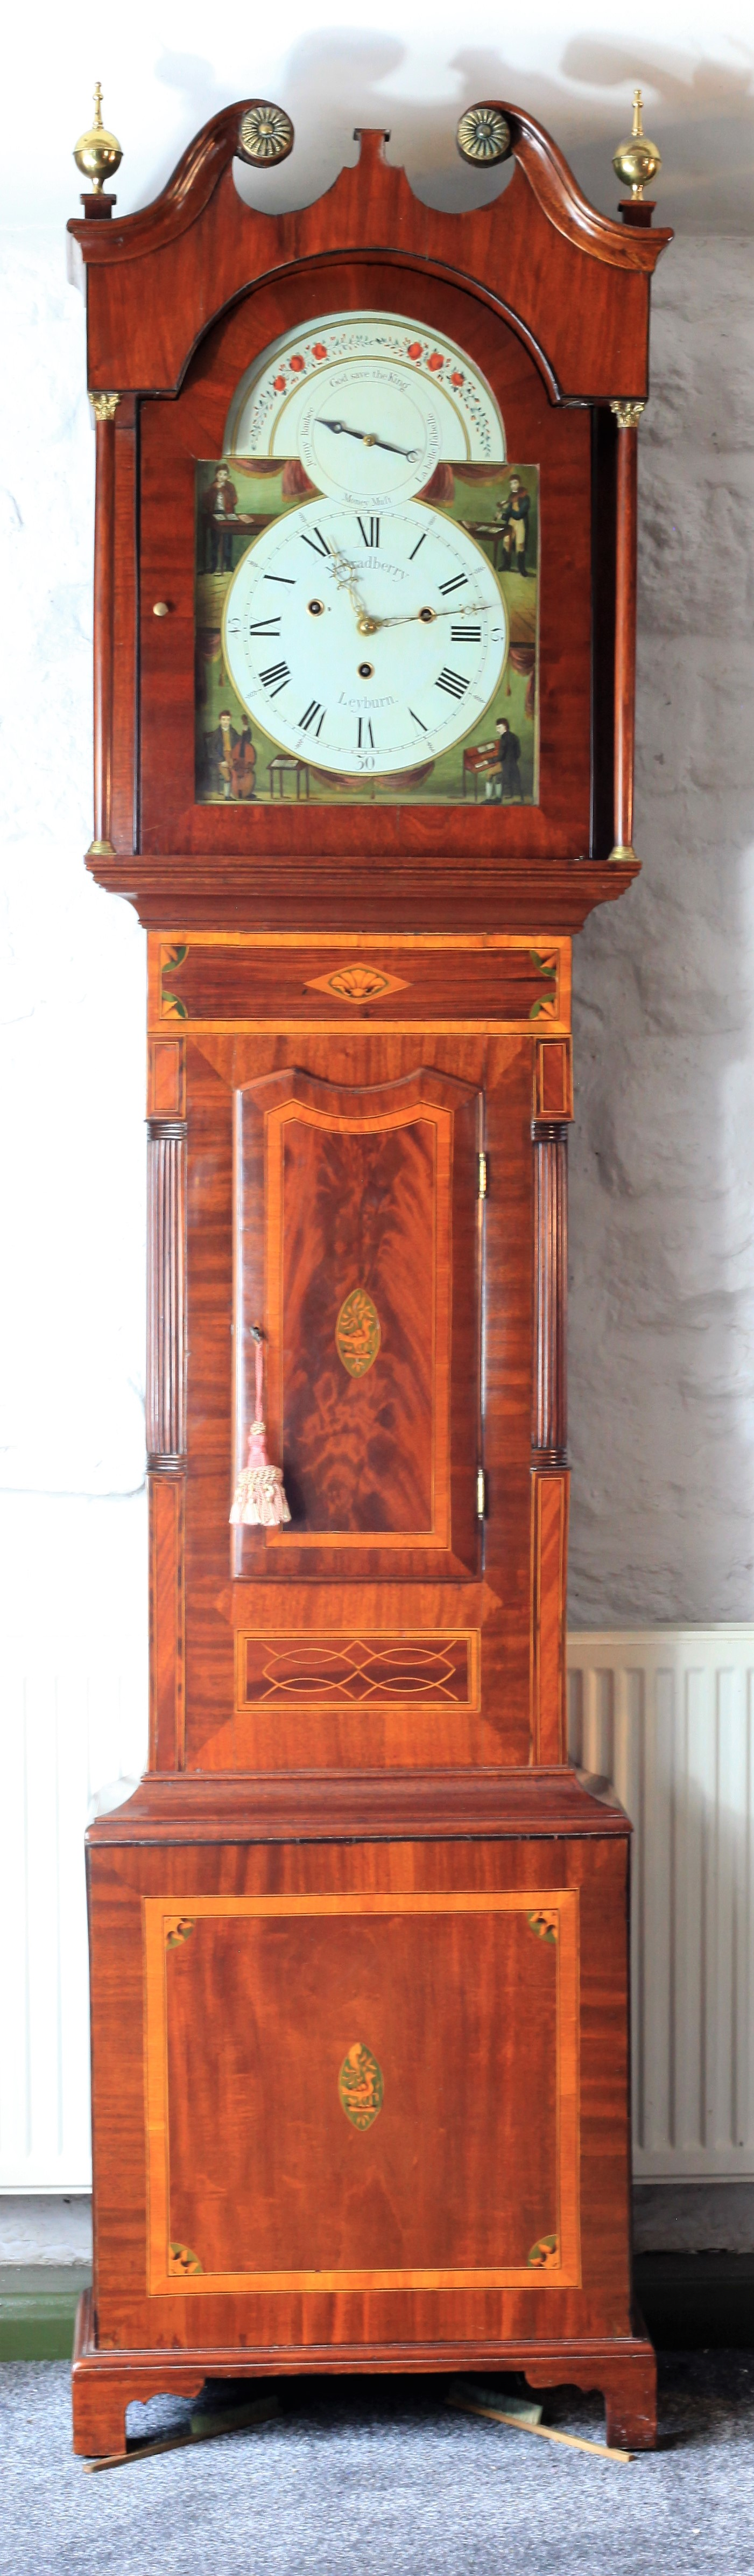 An Auto Changing Four Tune Musical Longcase Clock By Bradberry of Leyburn